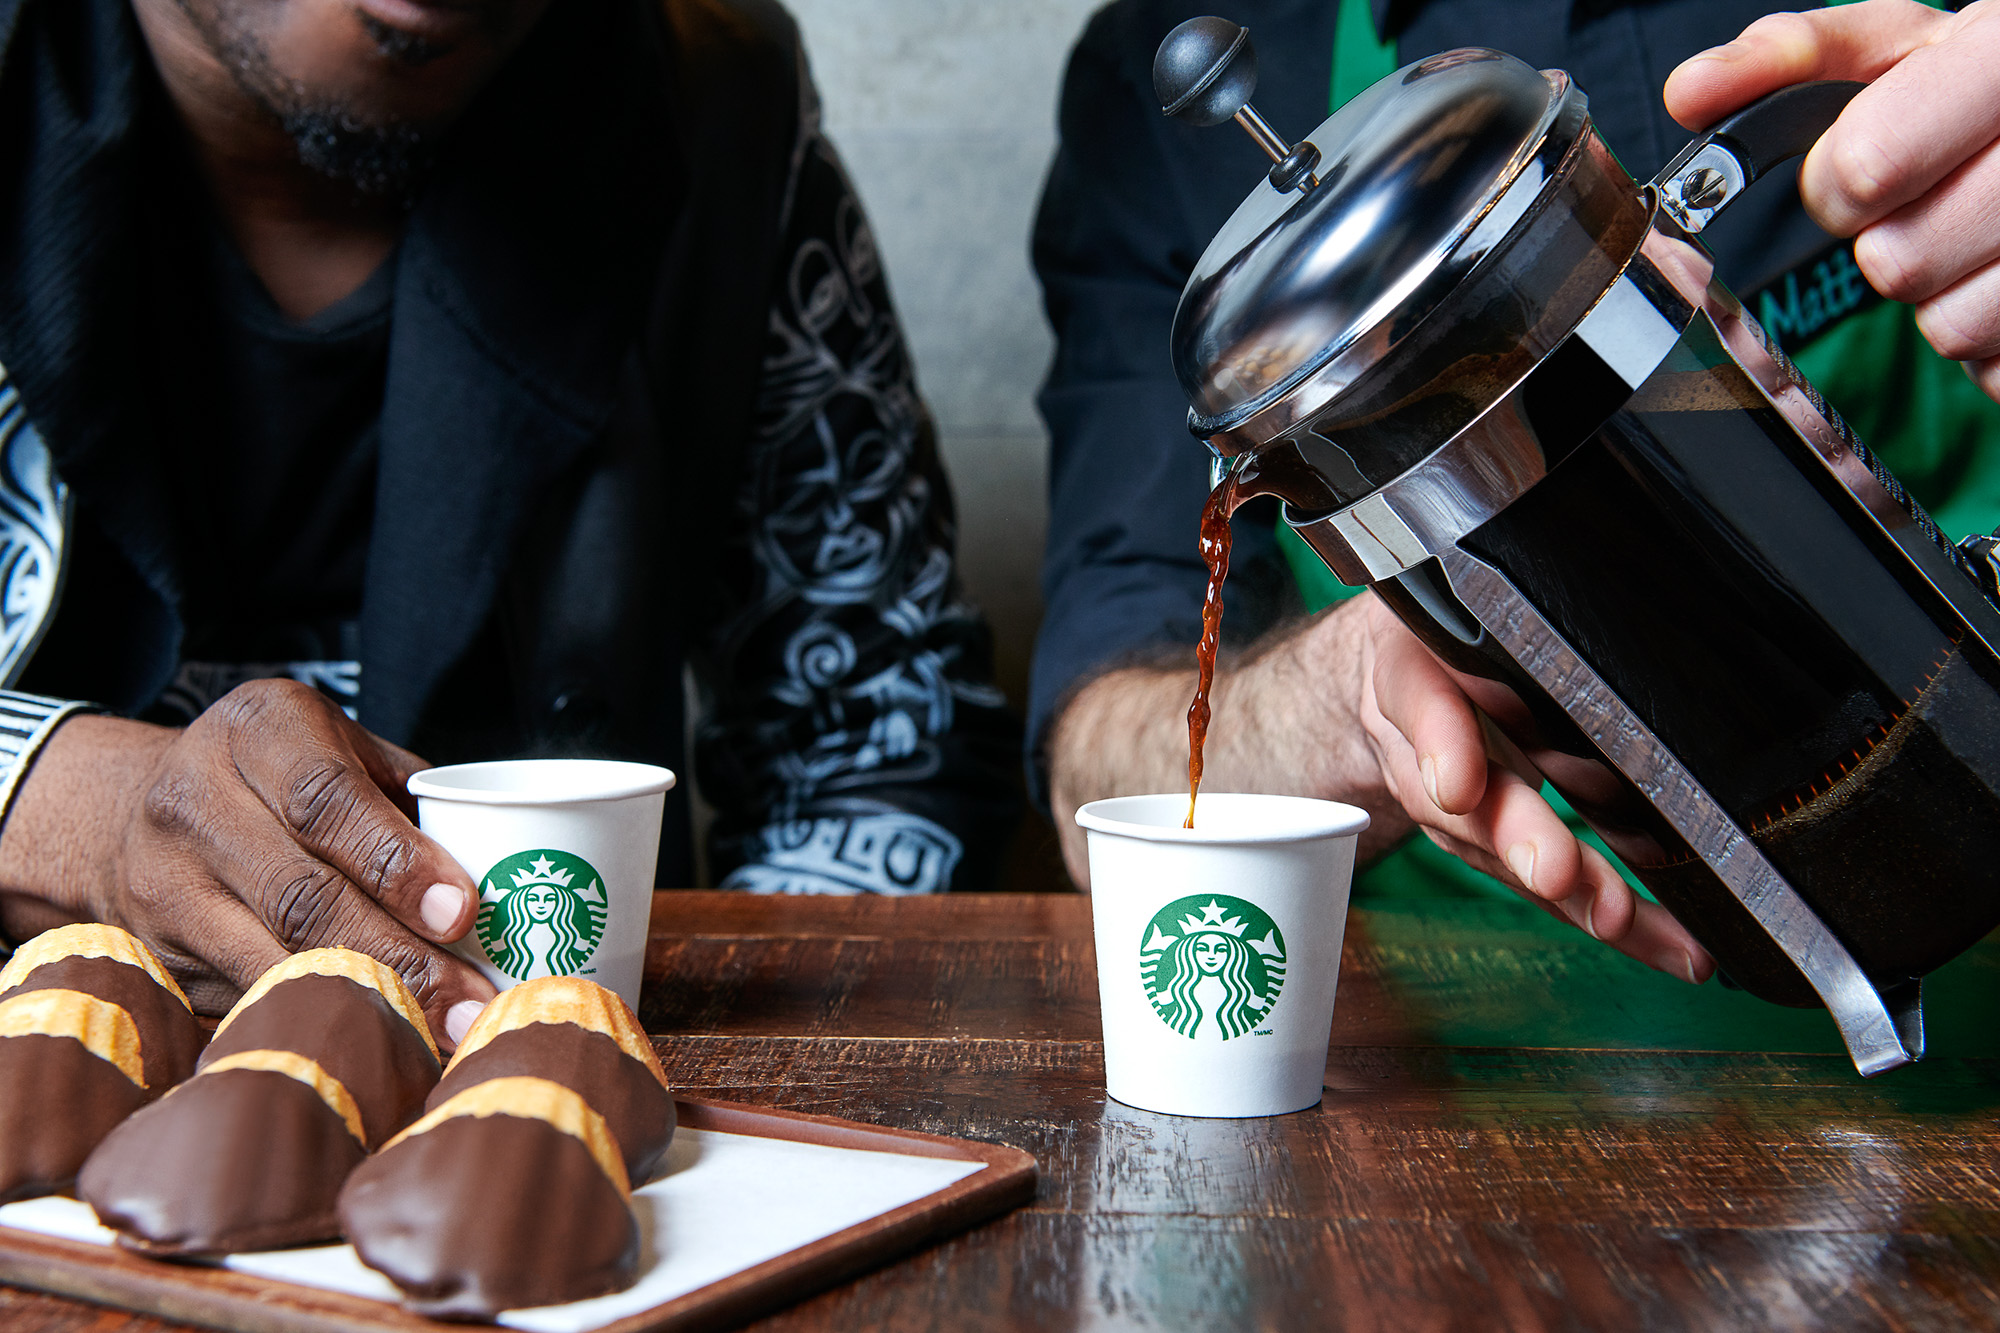 NYC + Chicago Food Photographer - Art + Coffee Starbucks Book